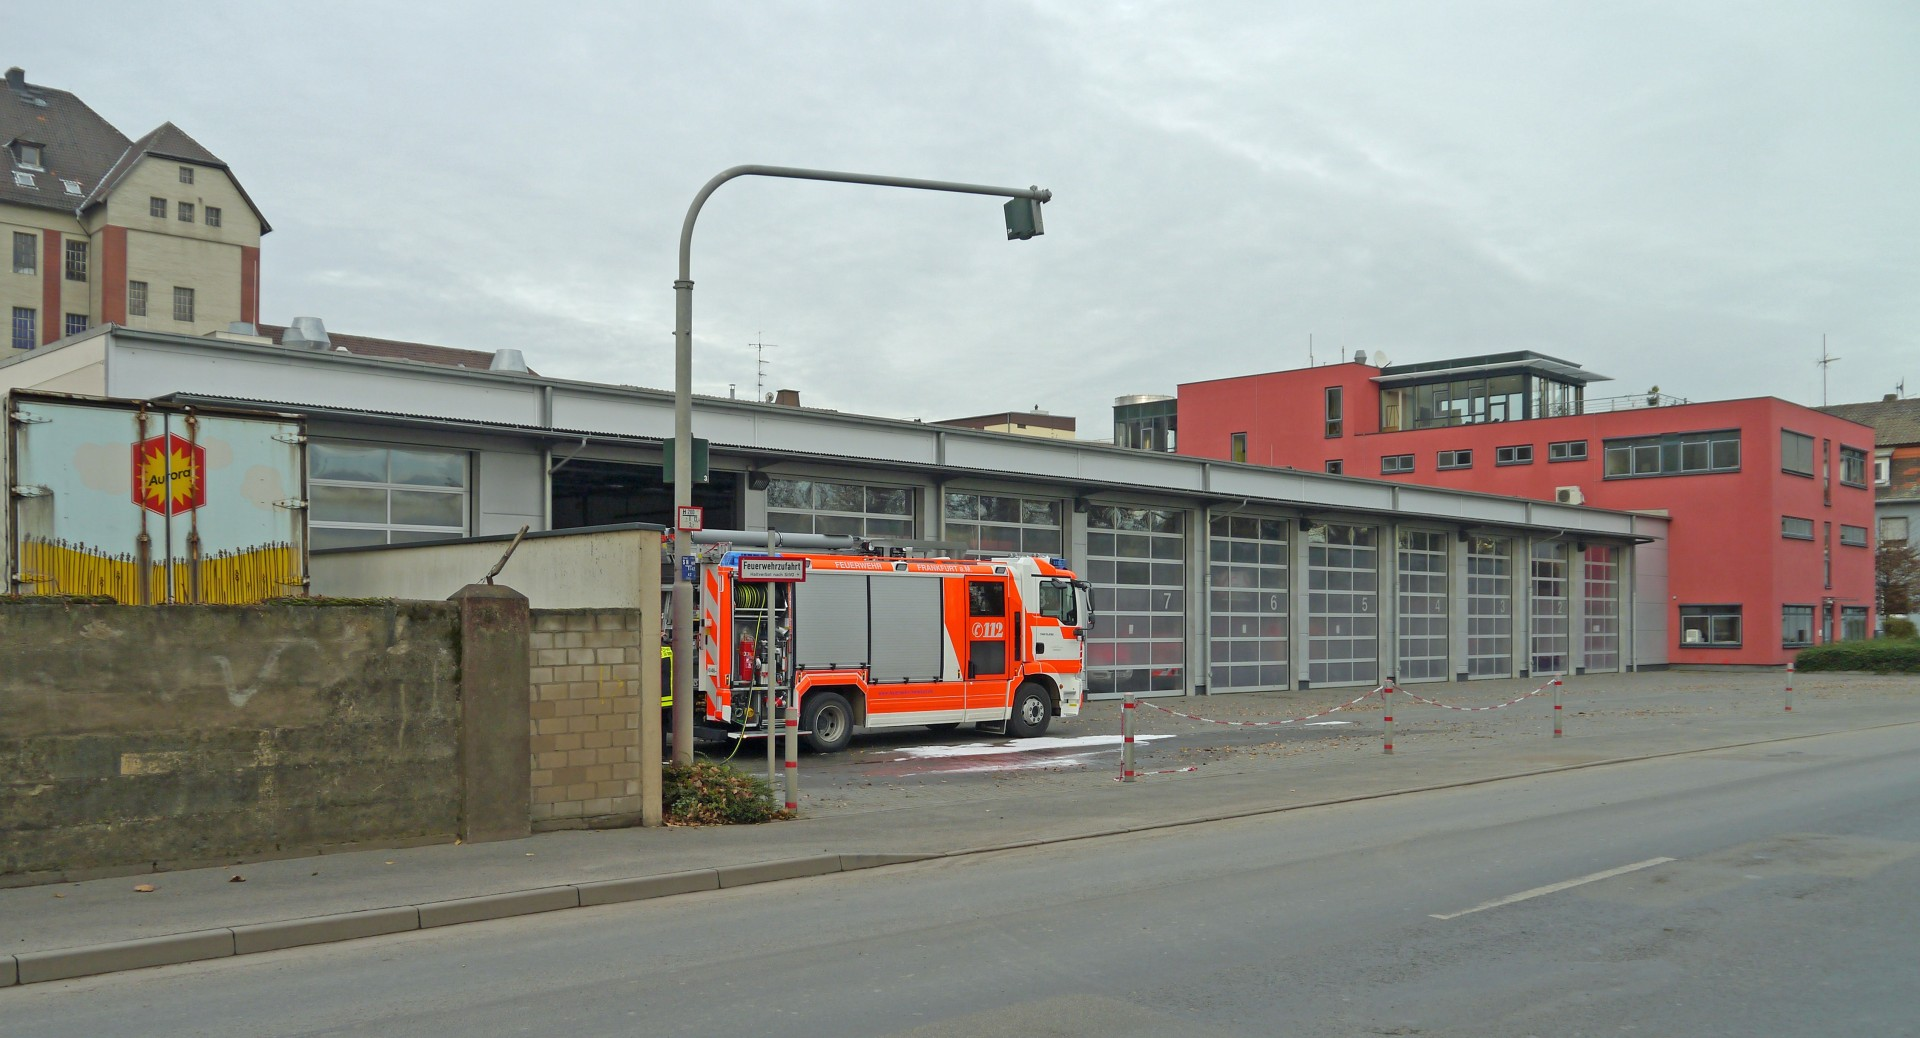 019 Essay Example Feuerwache Osthafen Ffm Visit To Fire Unusual Station 1920